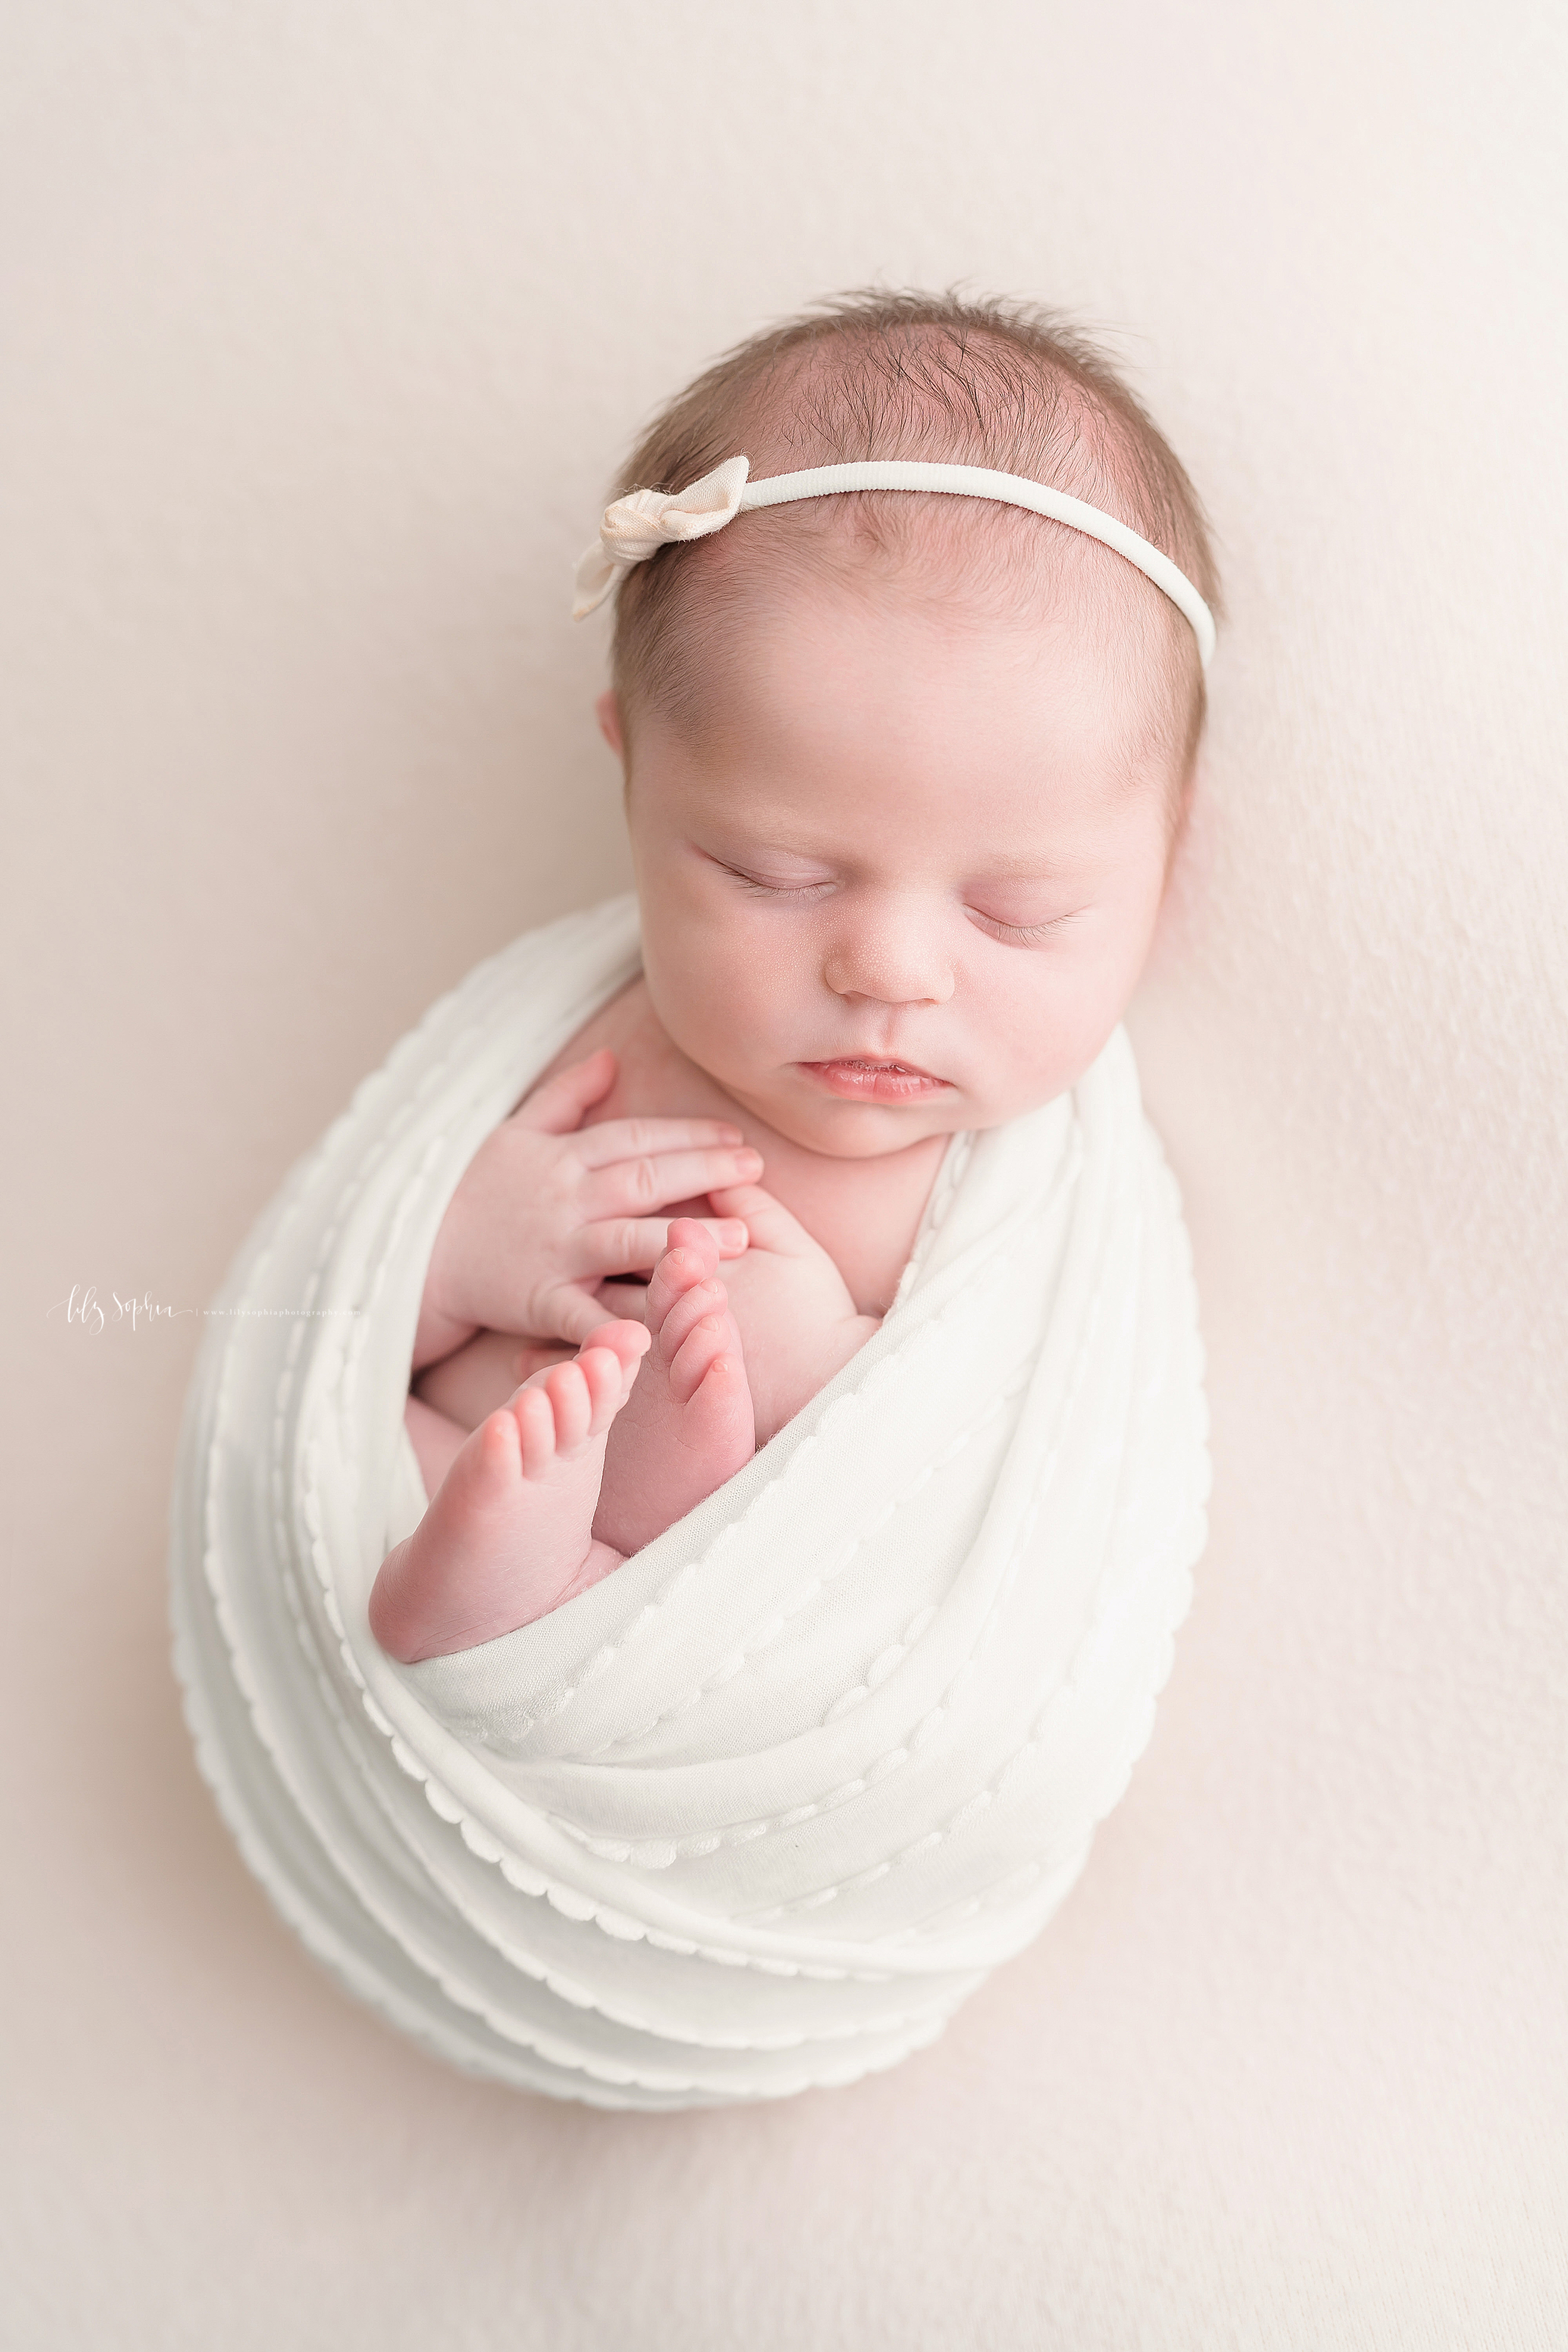 Newborn photo of a sweet sleeping baby girl wearing a cream bow headband in her brunette hair and bundled in a cream wrapped taken in a natural light studio in Atlanta, Georgia.